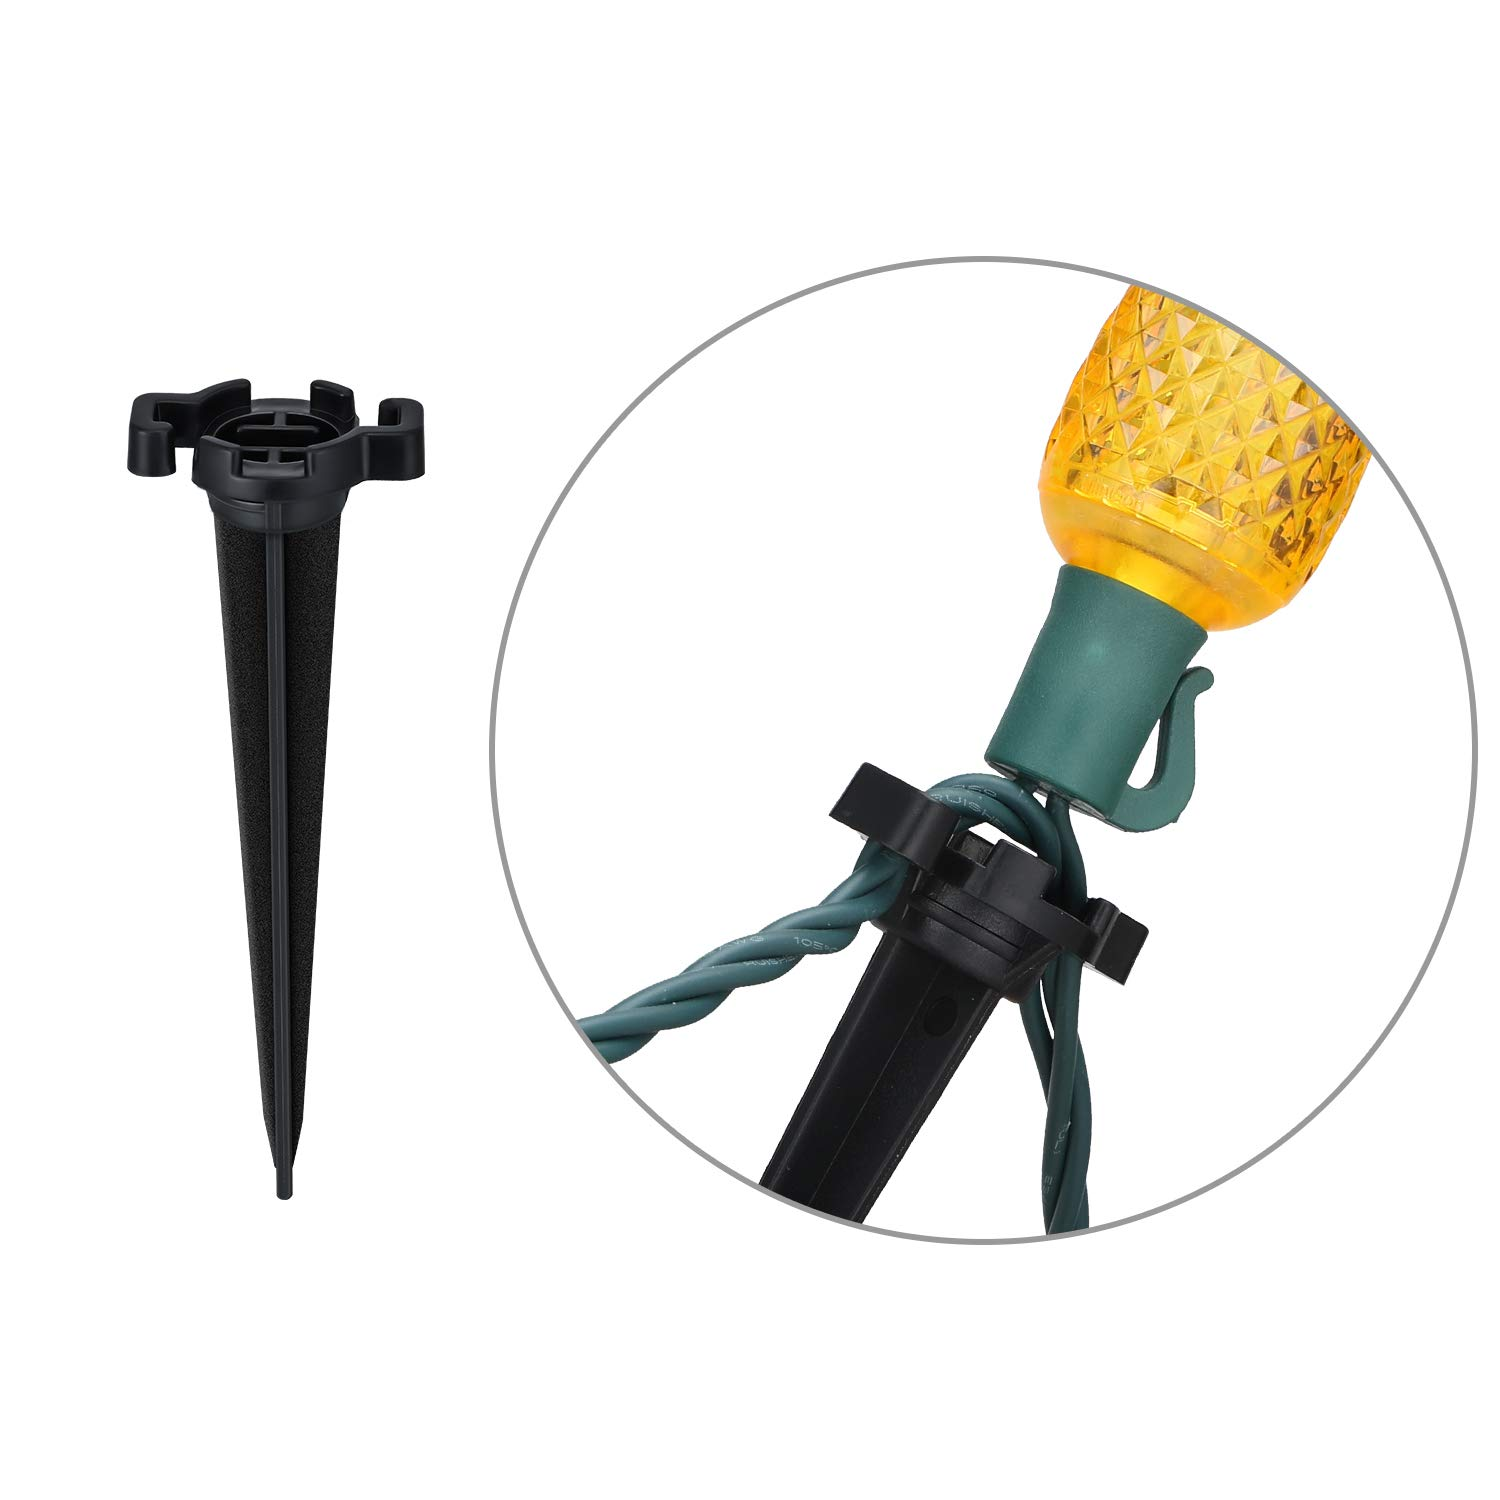 30 Pieces Christmas Light Stakes C7 C9 Black Plastic Light Stakes Lawn Pathway String Light Stakes for Christmas Holiday 4.5 Inch